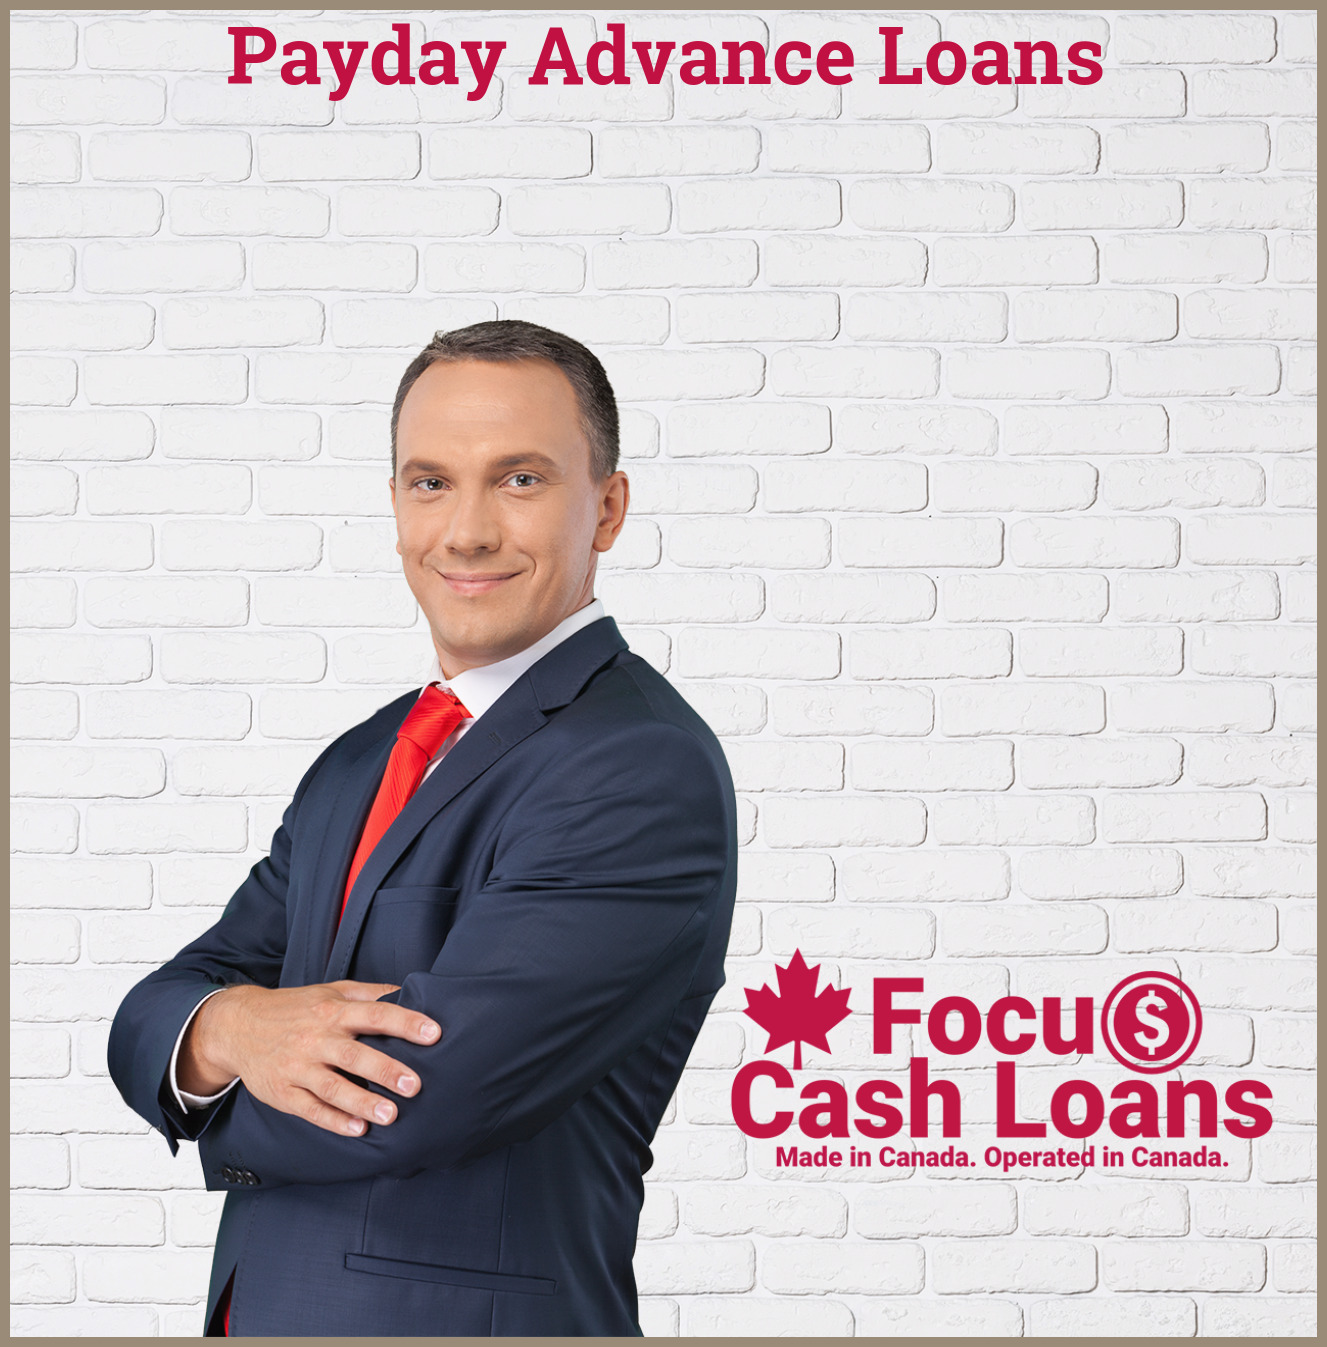 Personal loans for bad credit can be approved in as little as a few minutes.